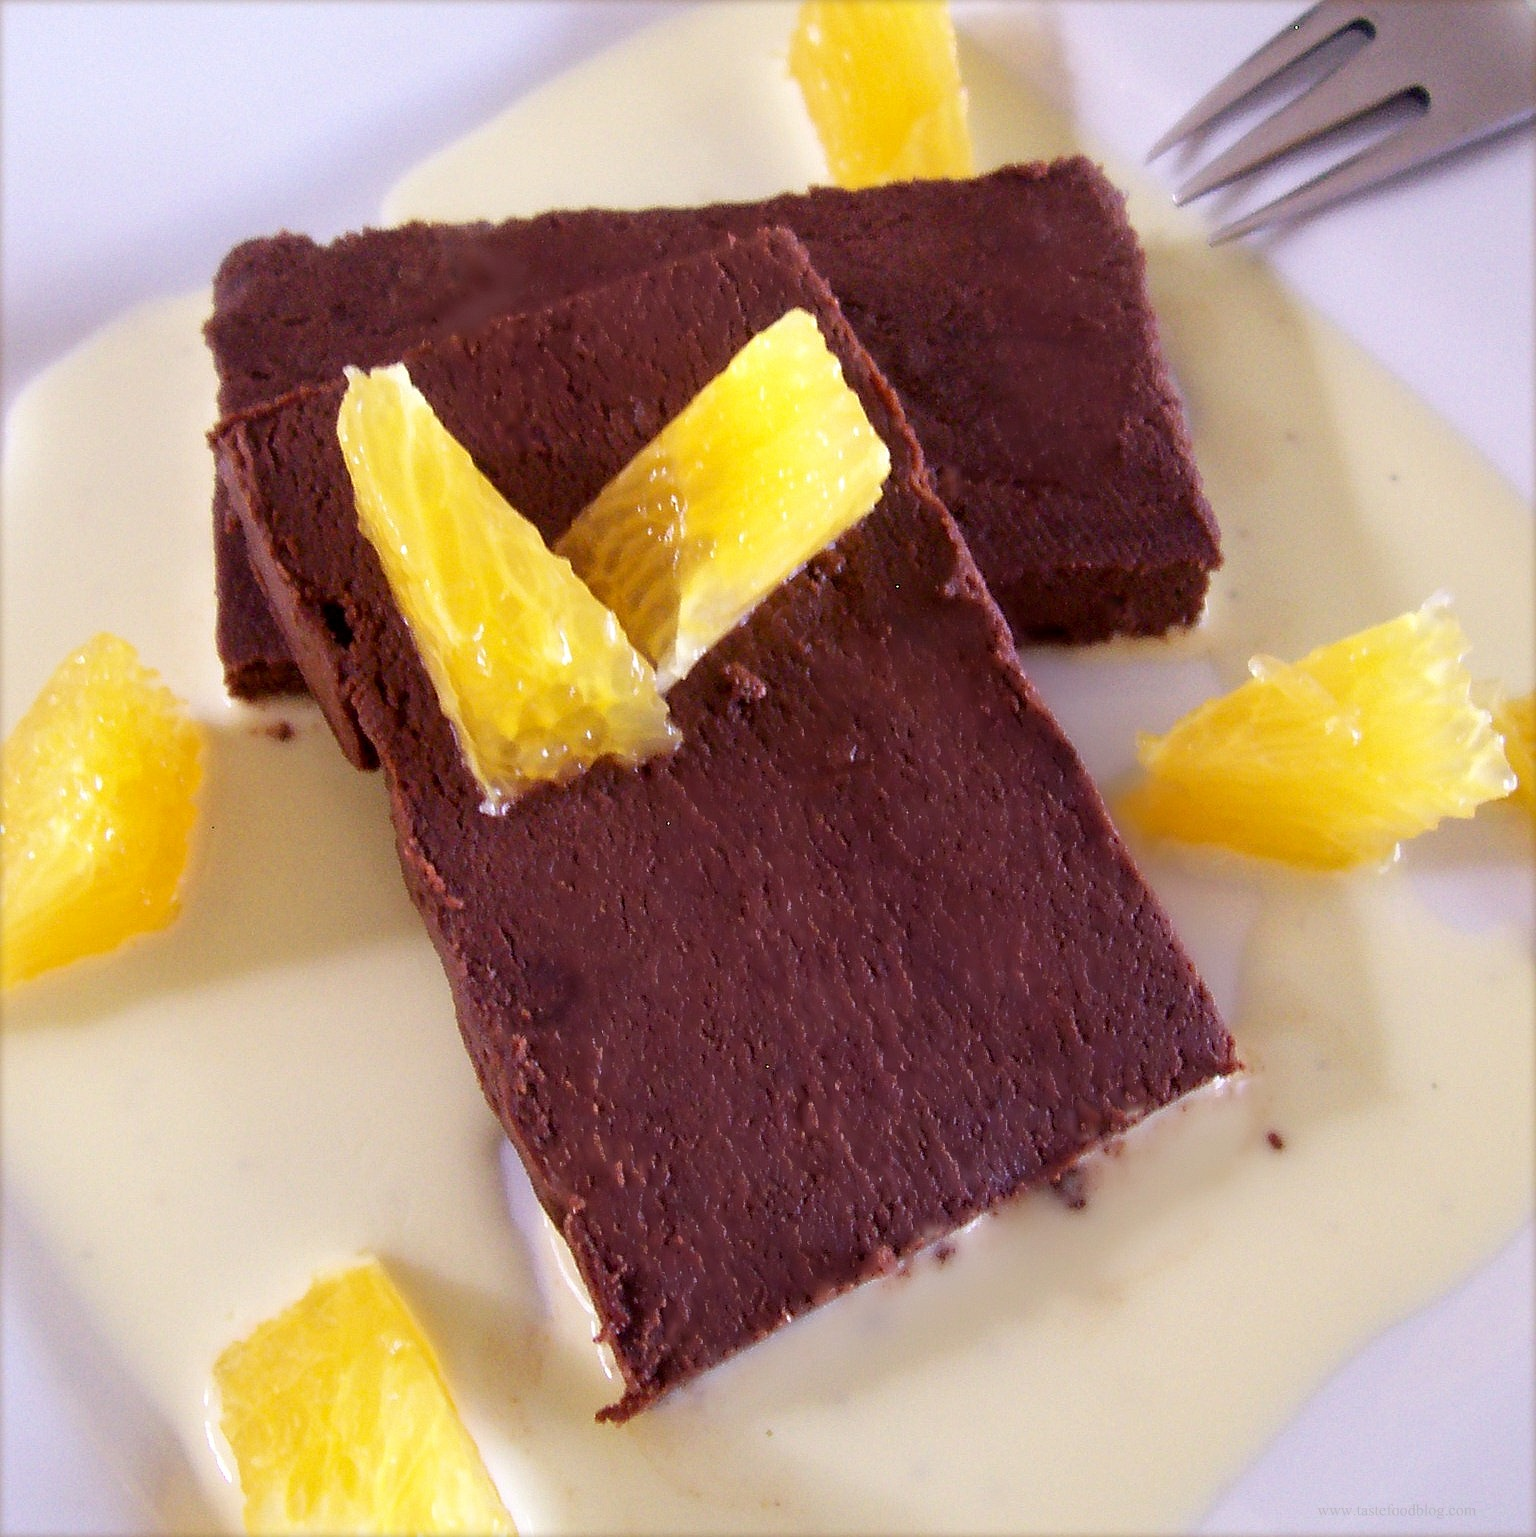 ... Dessert: Chocolate Terrine with Orange Crème Anglaise | TasteFood